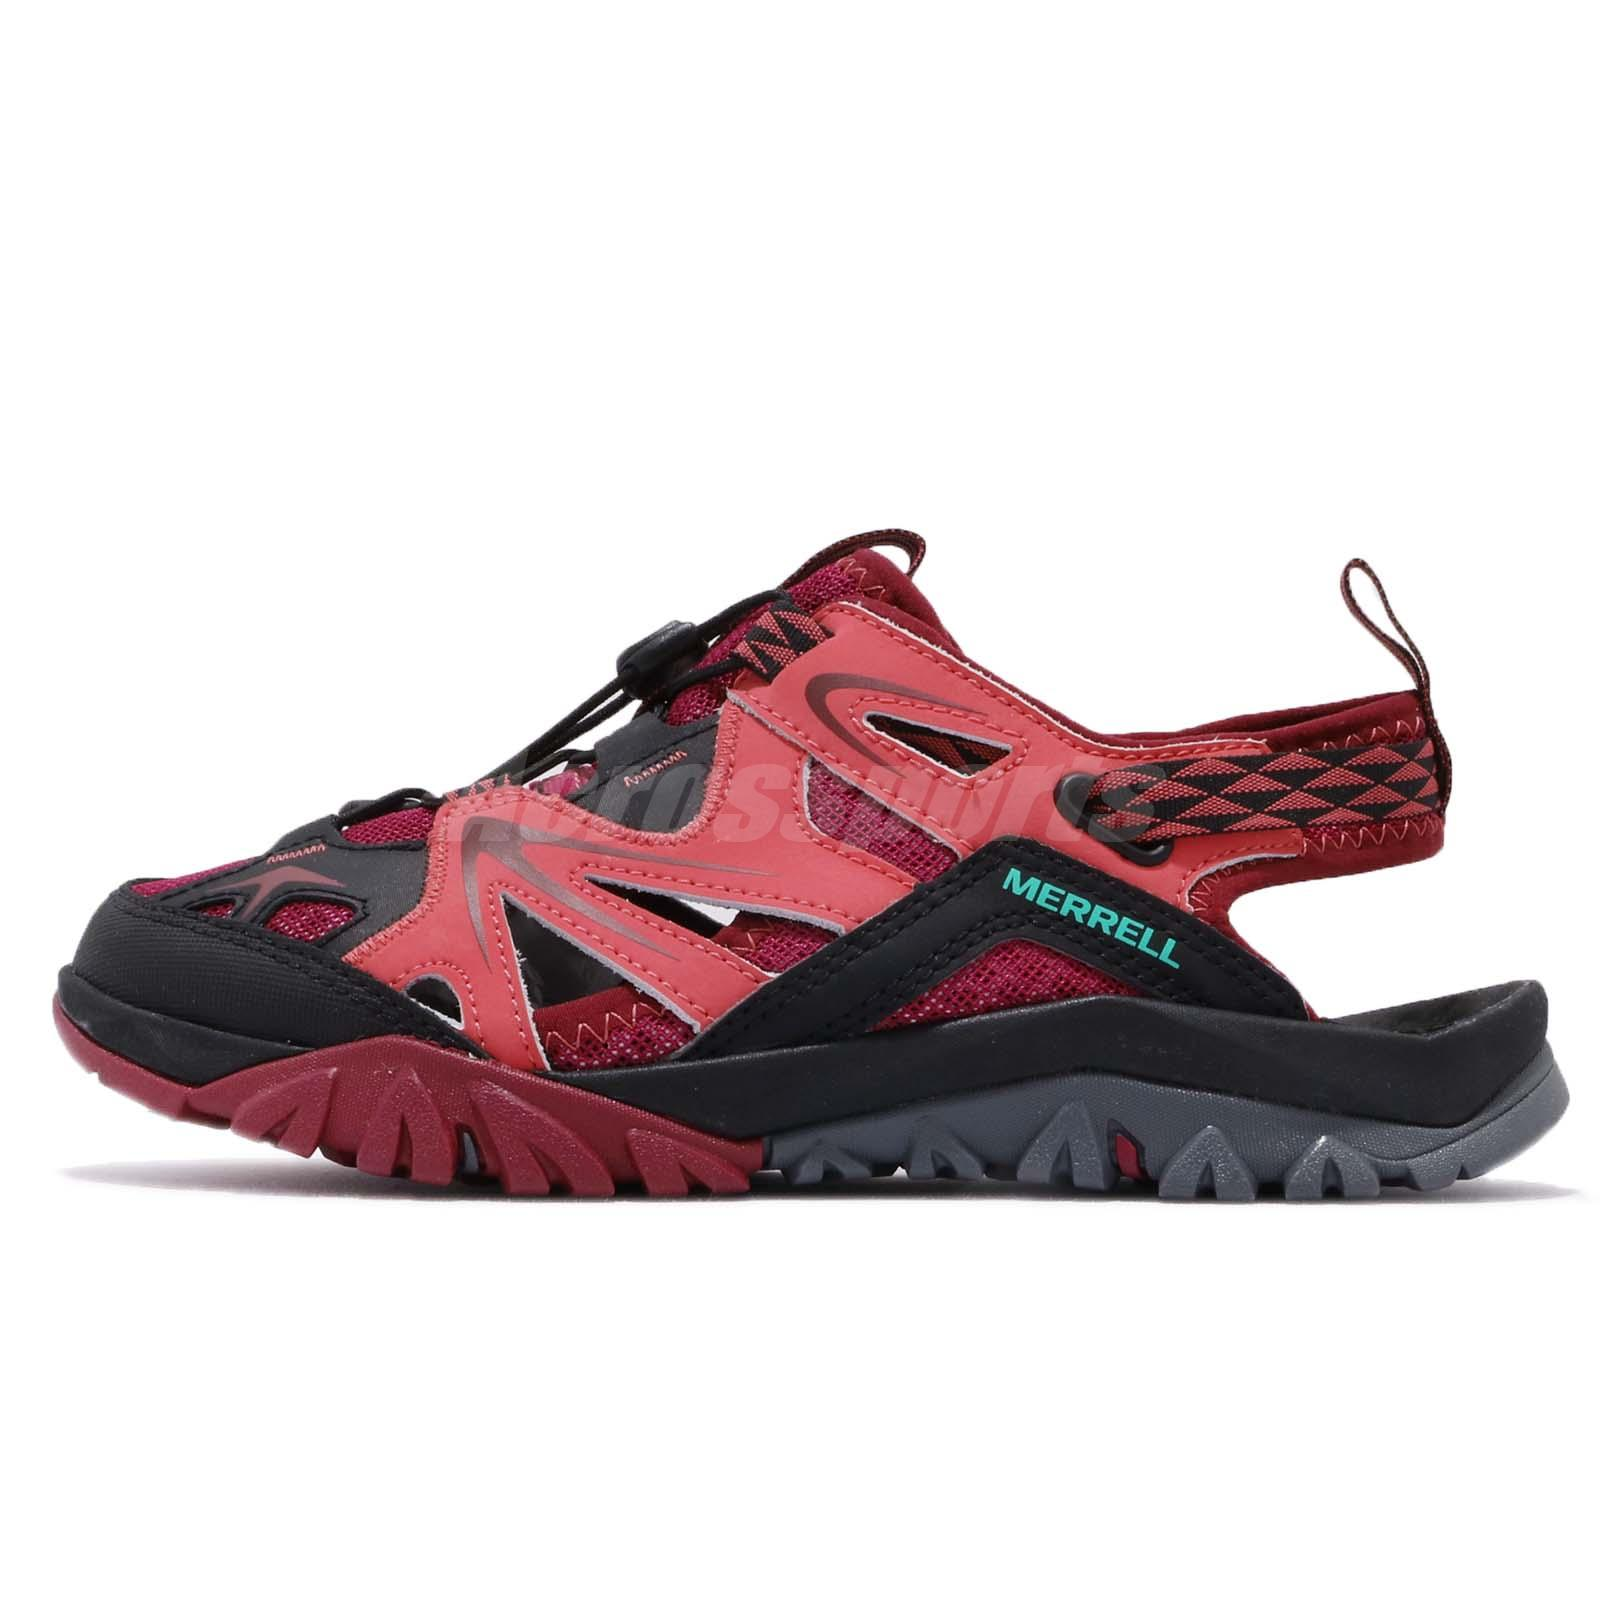 6cfdd71d5d68 Merrell Capra Rapid Sieve Bright Red Black Womens Outdoors Shoes Sandals  ML35500